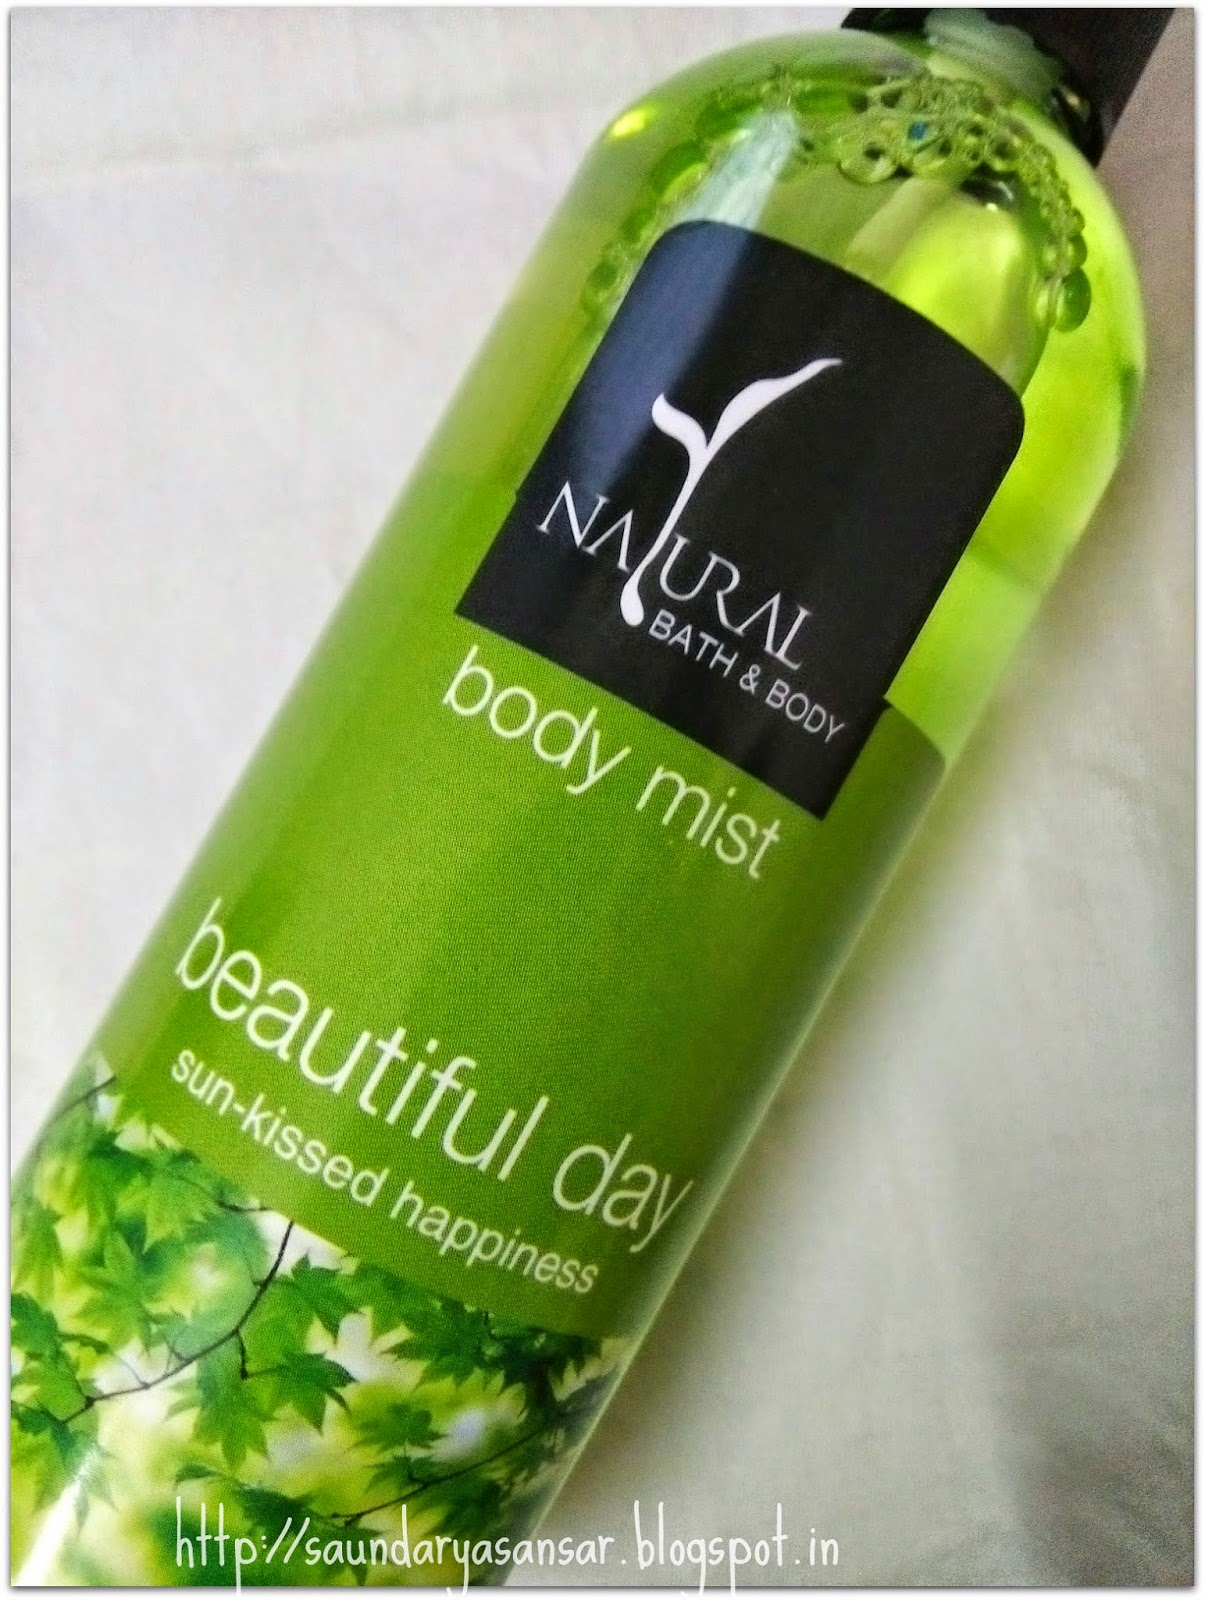 Natural Bath & Body- Beautiful Day Sun-Kissed Happiness body mist: Review